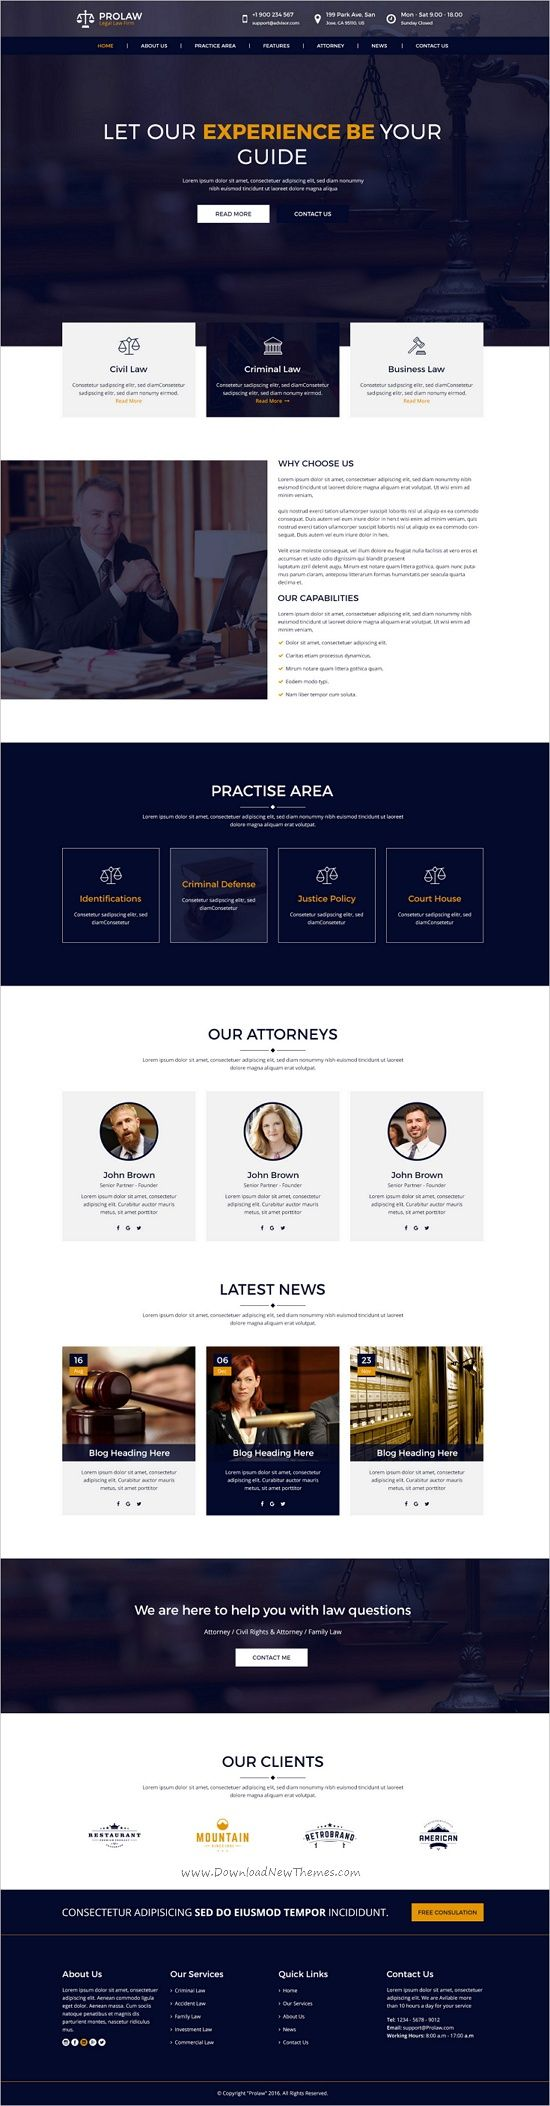 Best 25 law firm website ideas on pinterest law web lawyer prolaw legal law firm attorney psd templates pronofoot35fo Choice Image